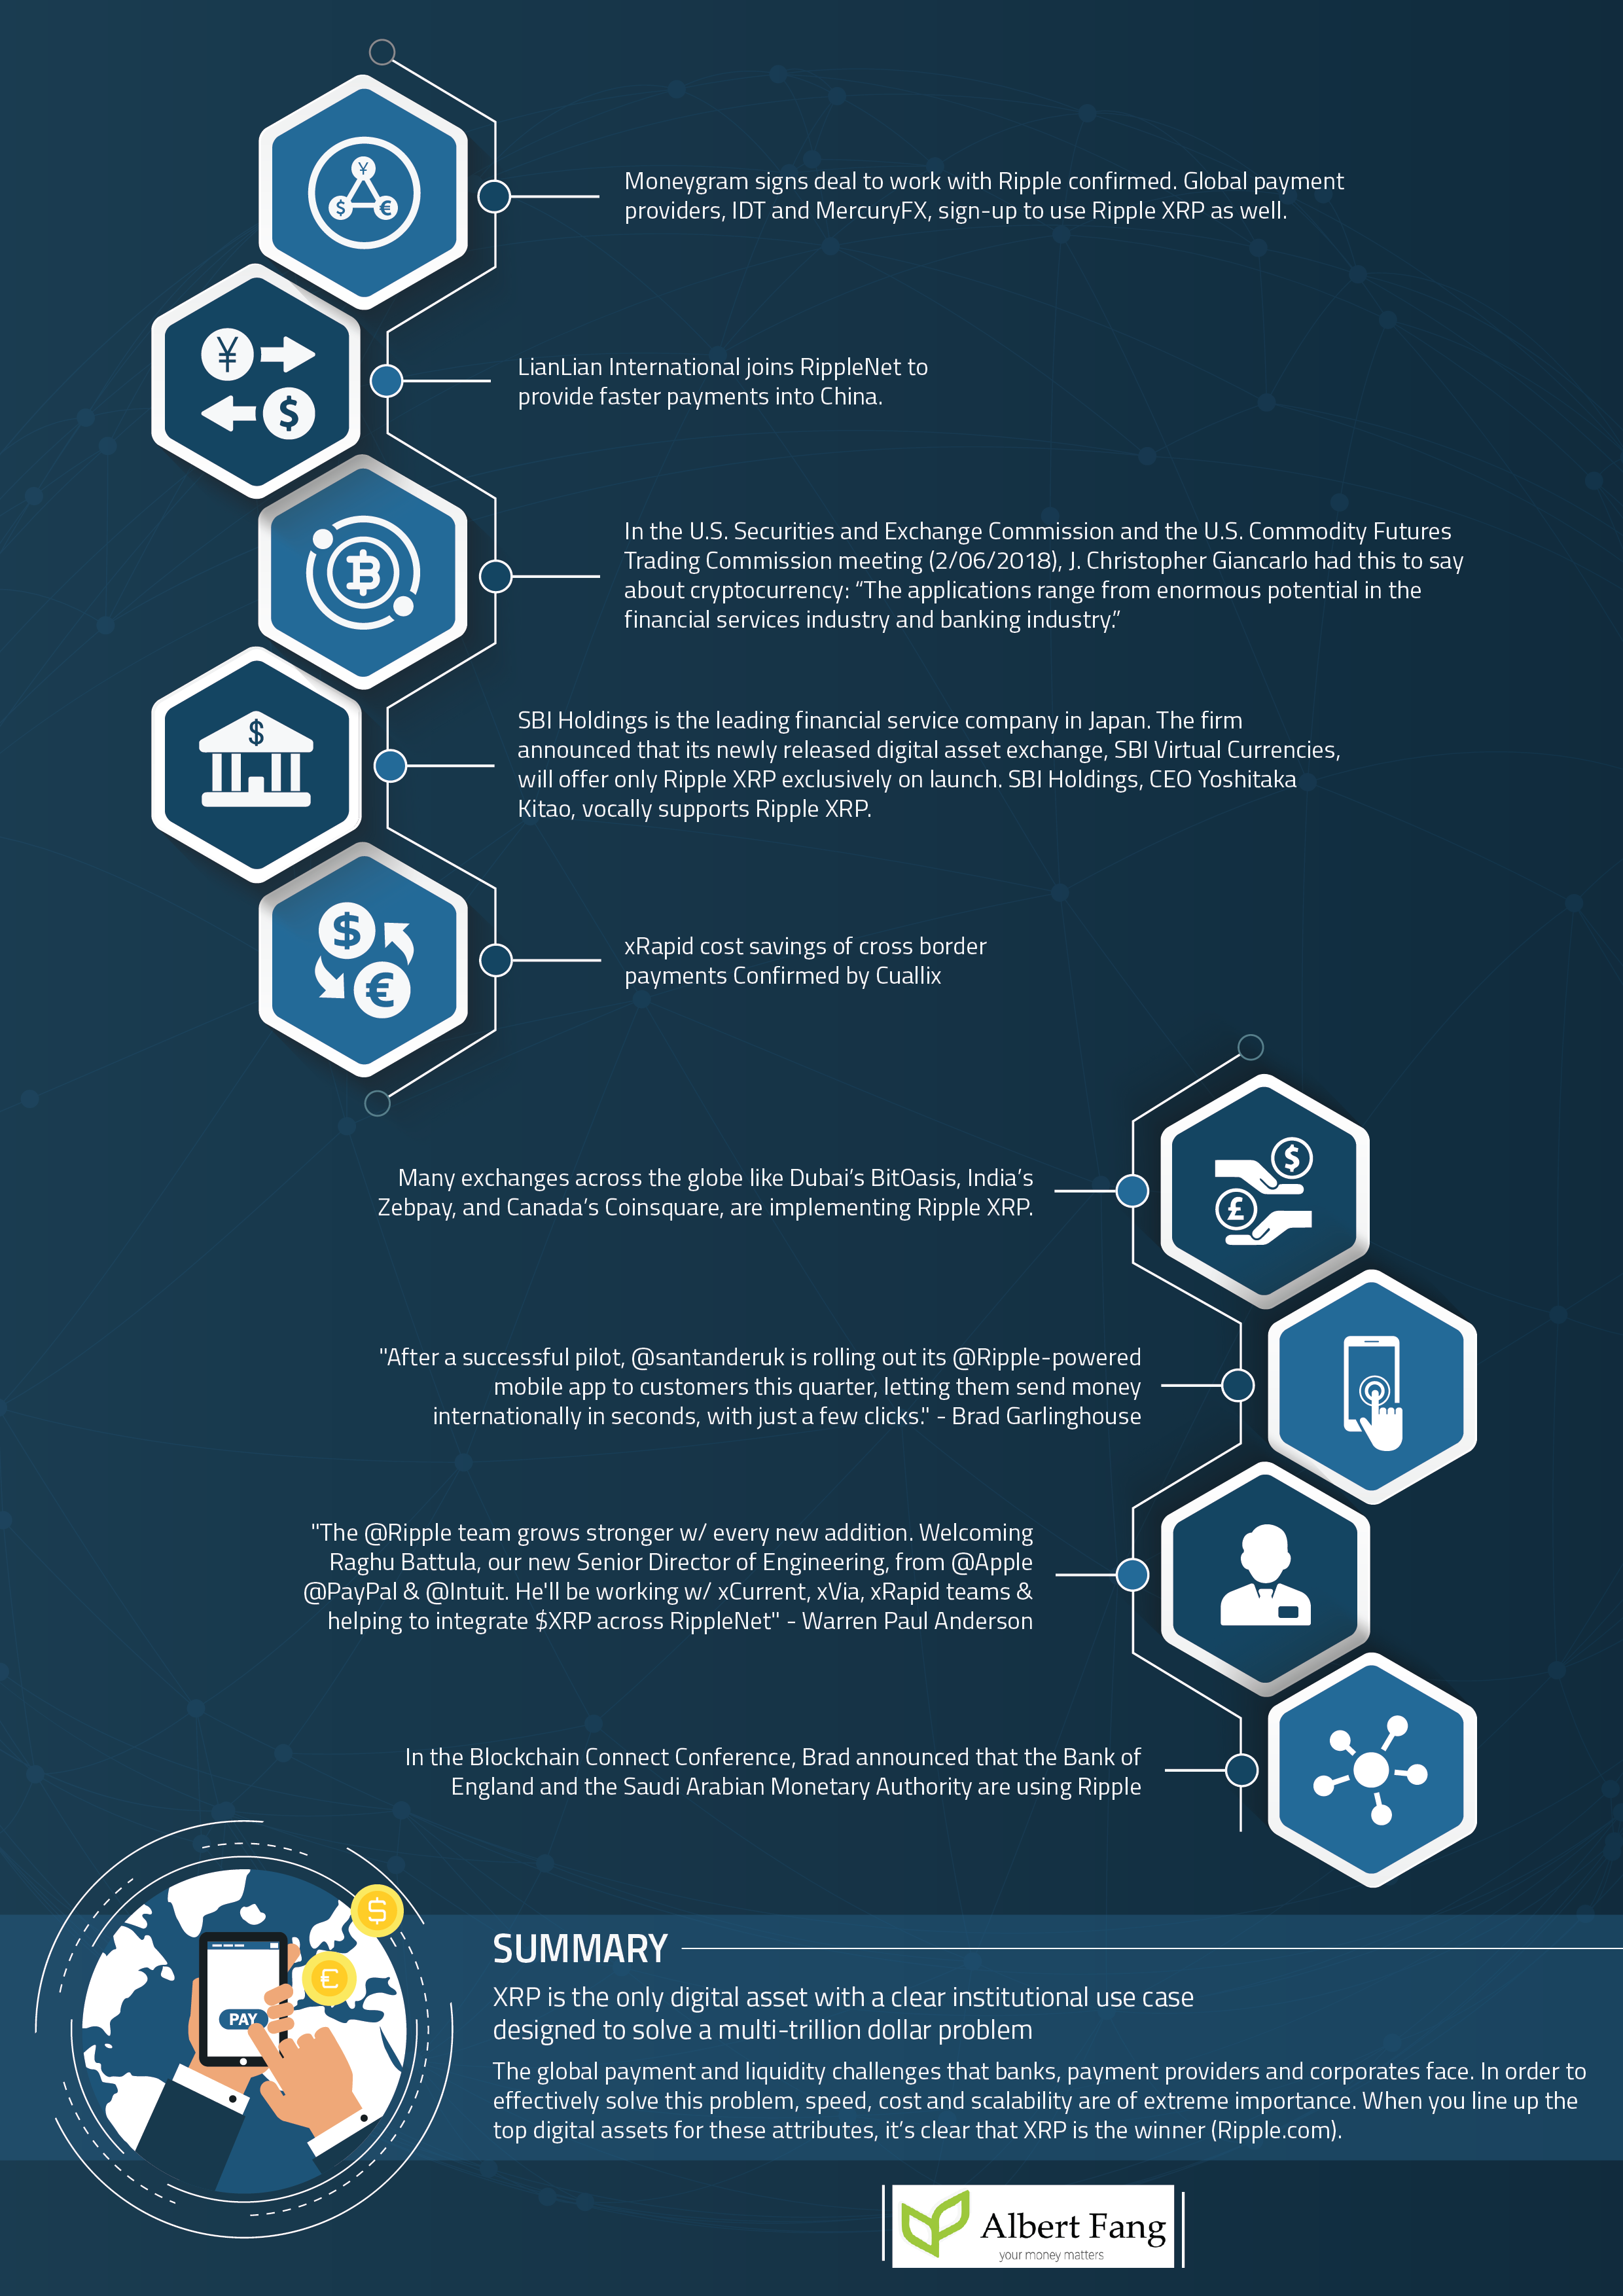 The Strong Case for Ripple XRP Infographic fangalbert.com